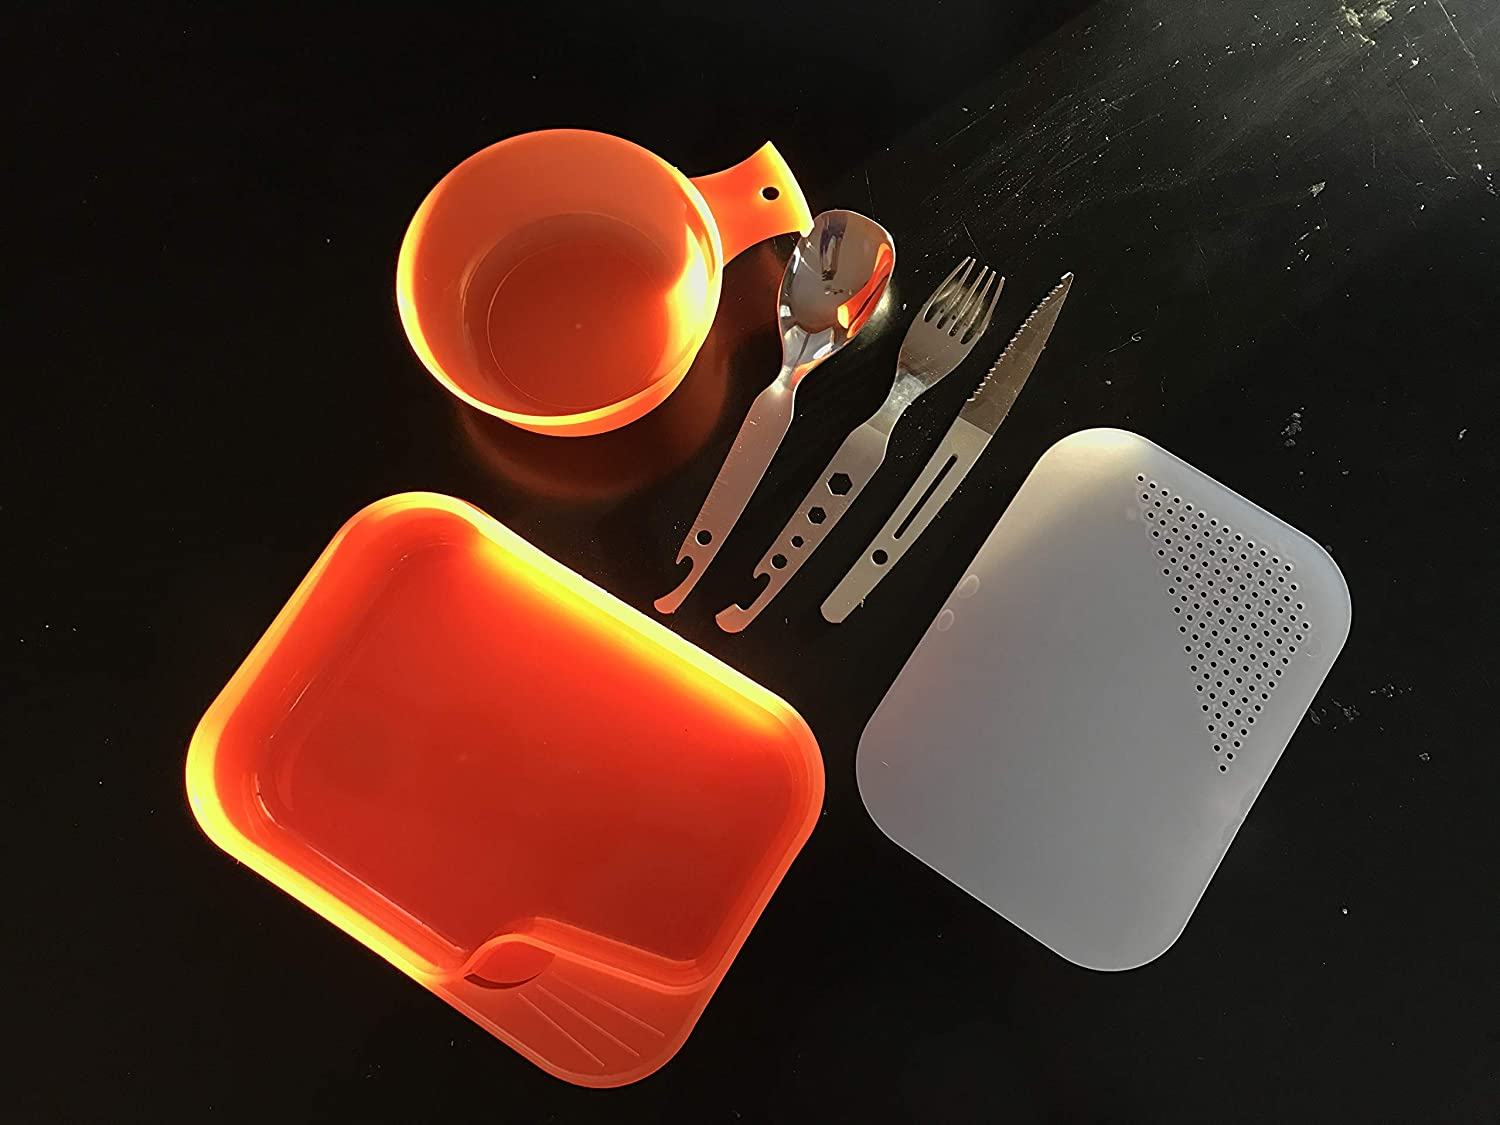 Backpacking Travel and Outdoor Survival UST Brands 20-02734 BPA Free Construction and Eating Utensils for Hiking UST PackWare Mess Kit with Self Contained Camping